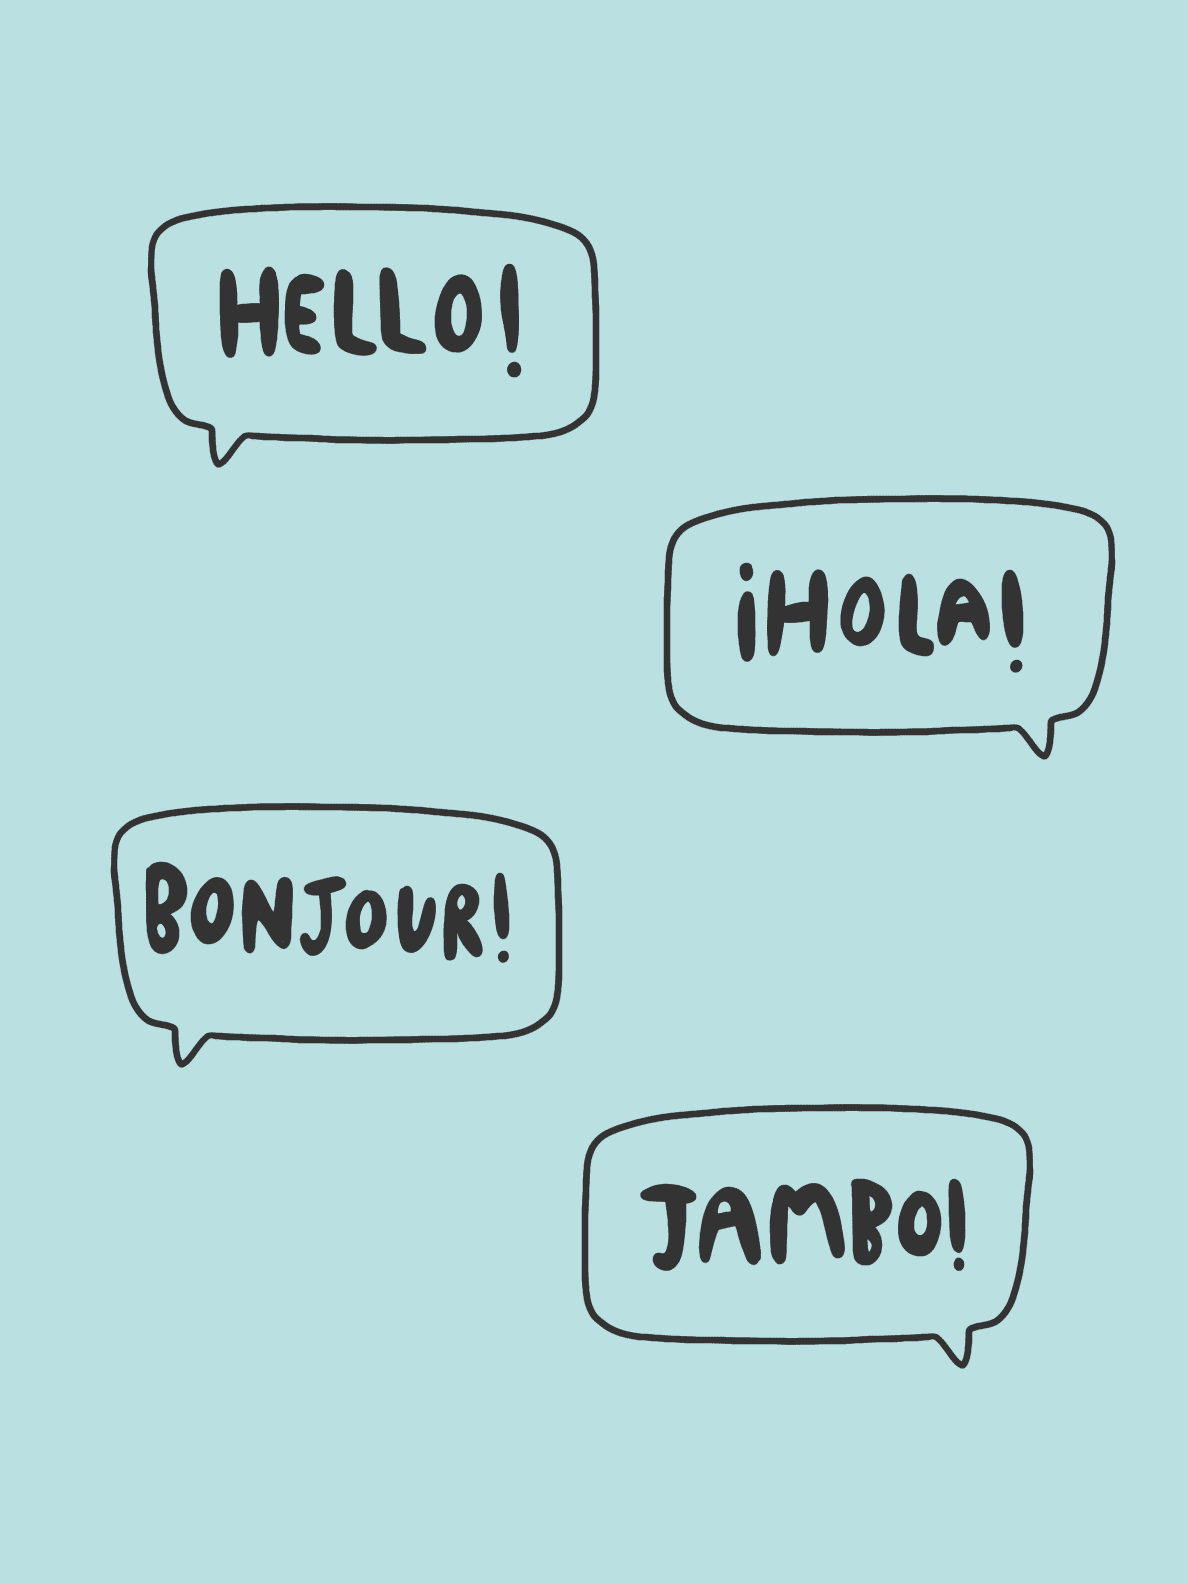 Hello in 4 languages